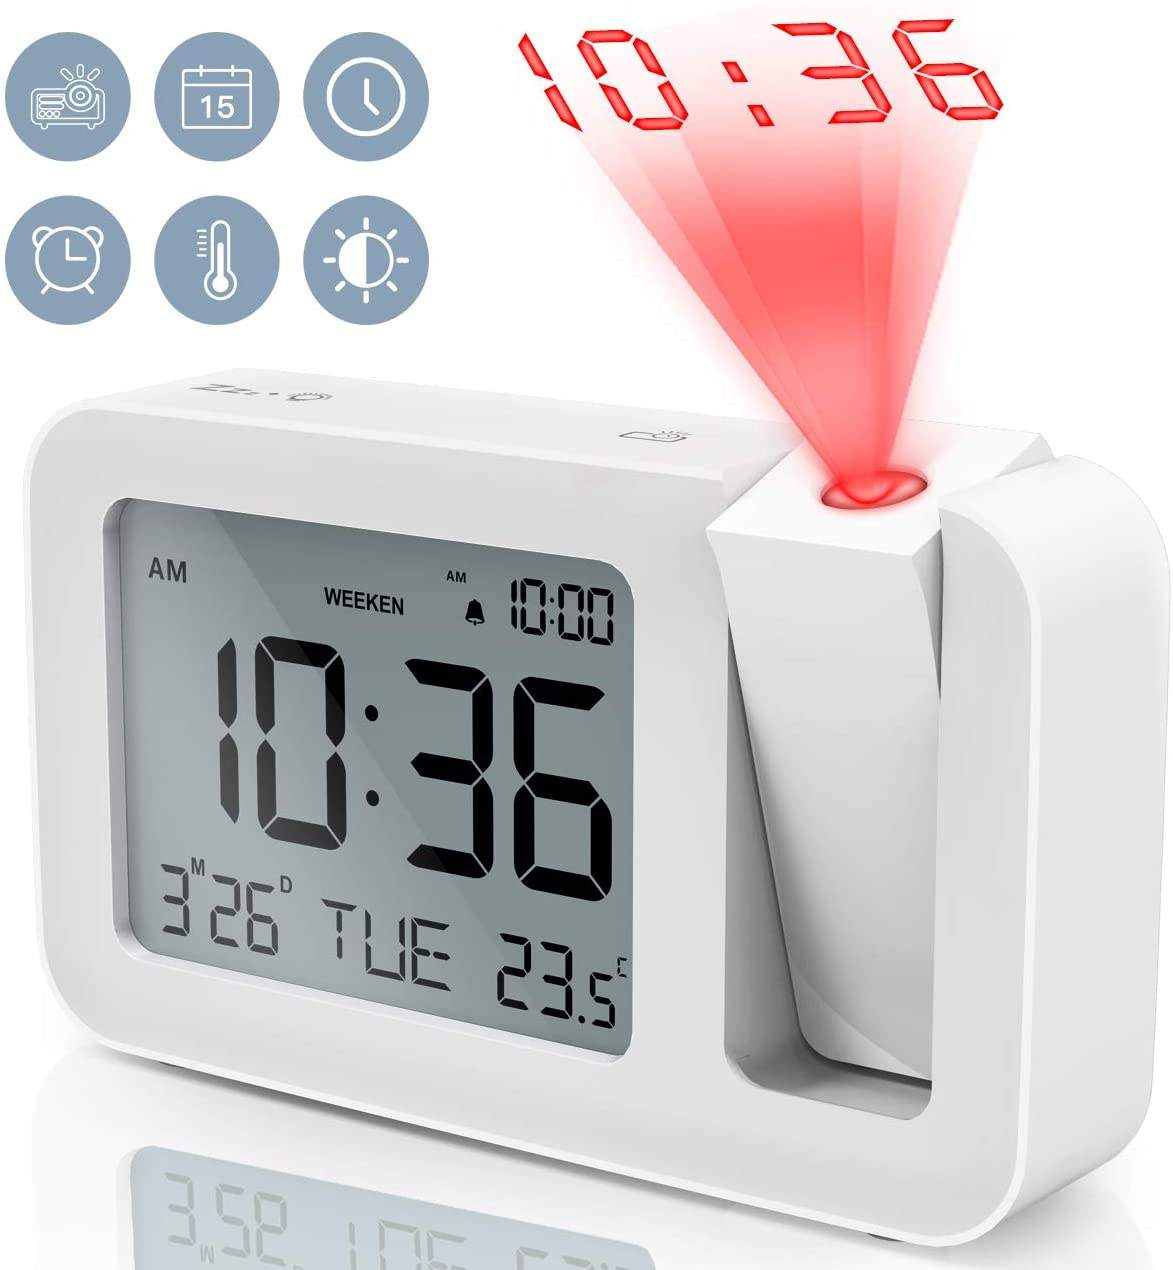 Desktop Electric Digital Projection Logo Mini Light Alarm LED Table Clock with Time Projector